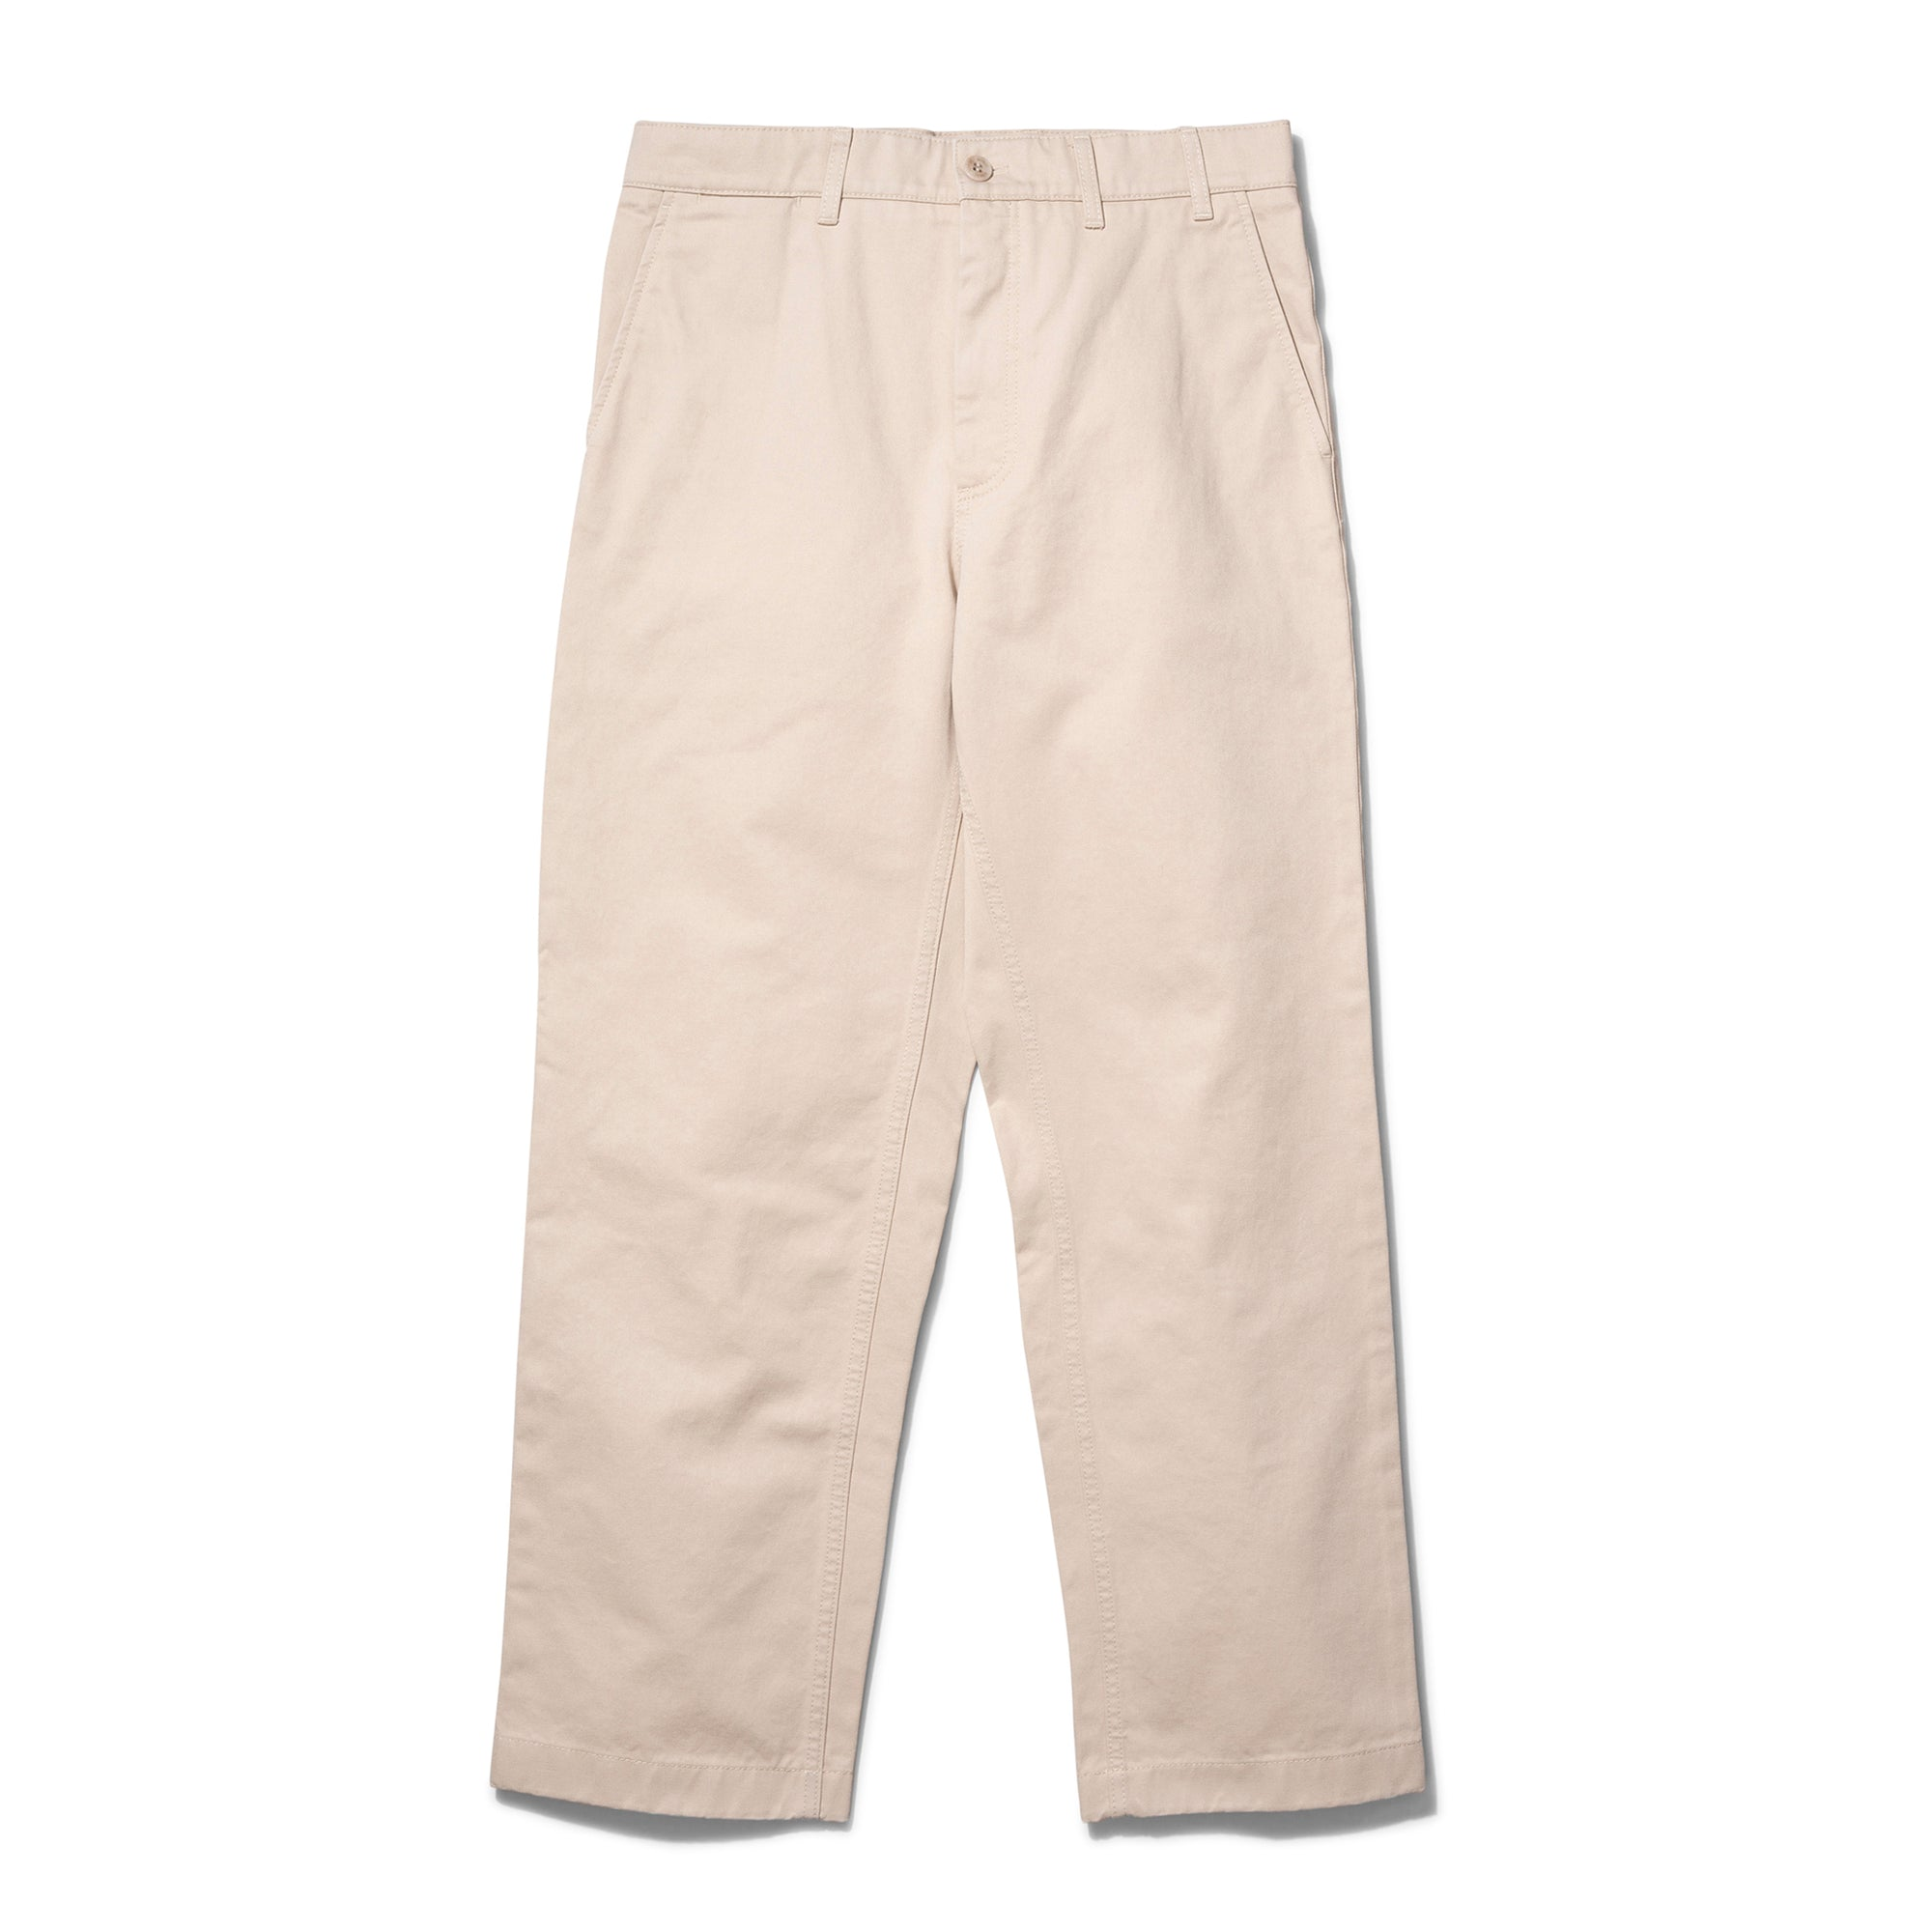 Norse Projects Lukas Wide Pant: Oatmeal - The Union Project